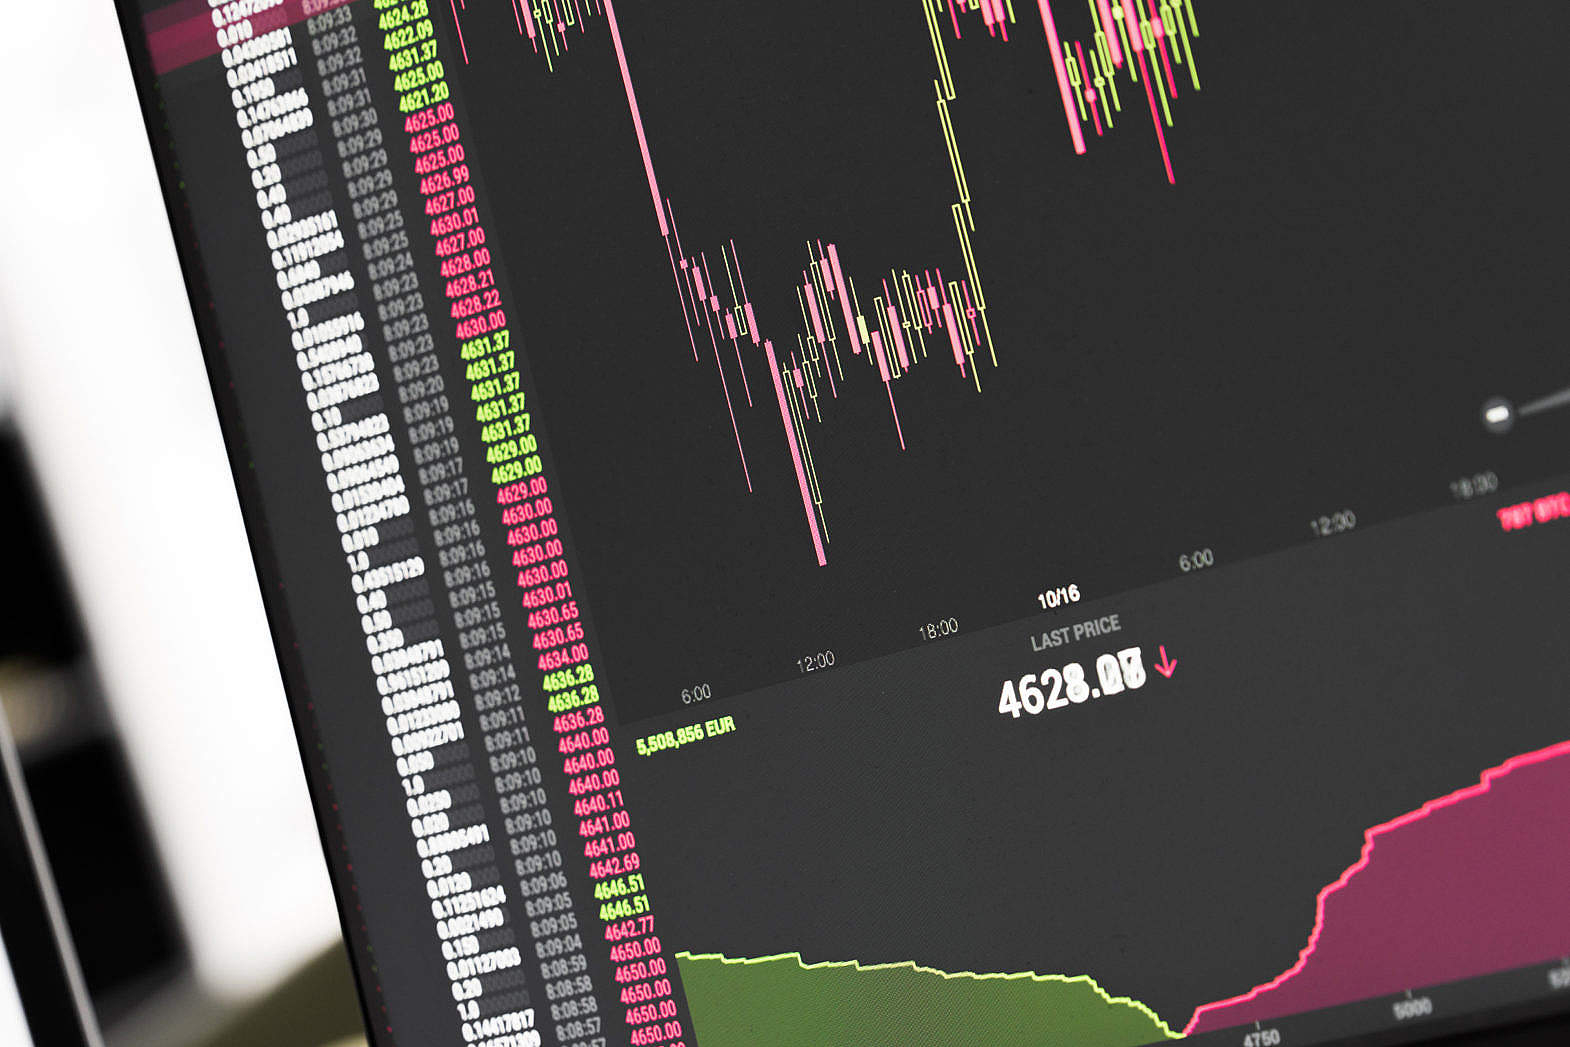 Bitcoin BTC Stock Exchange Live Price Chart Free Stock Photo Download